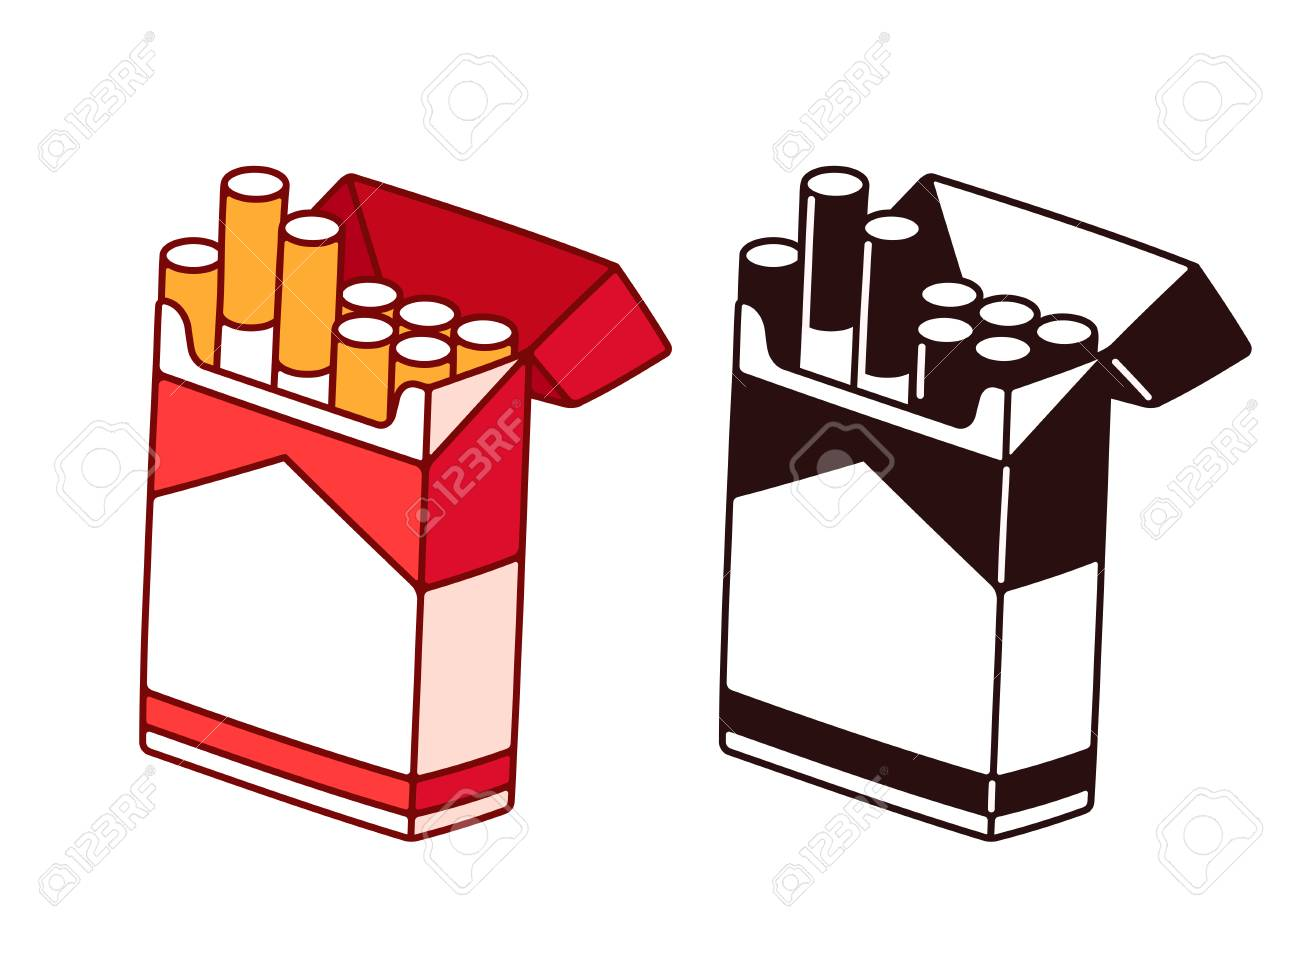 Open cigarette pack cartoon drawing in color and black and white. Smoking habit vector illustration. - 109675114